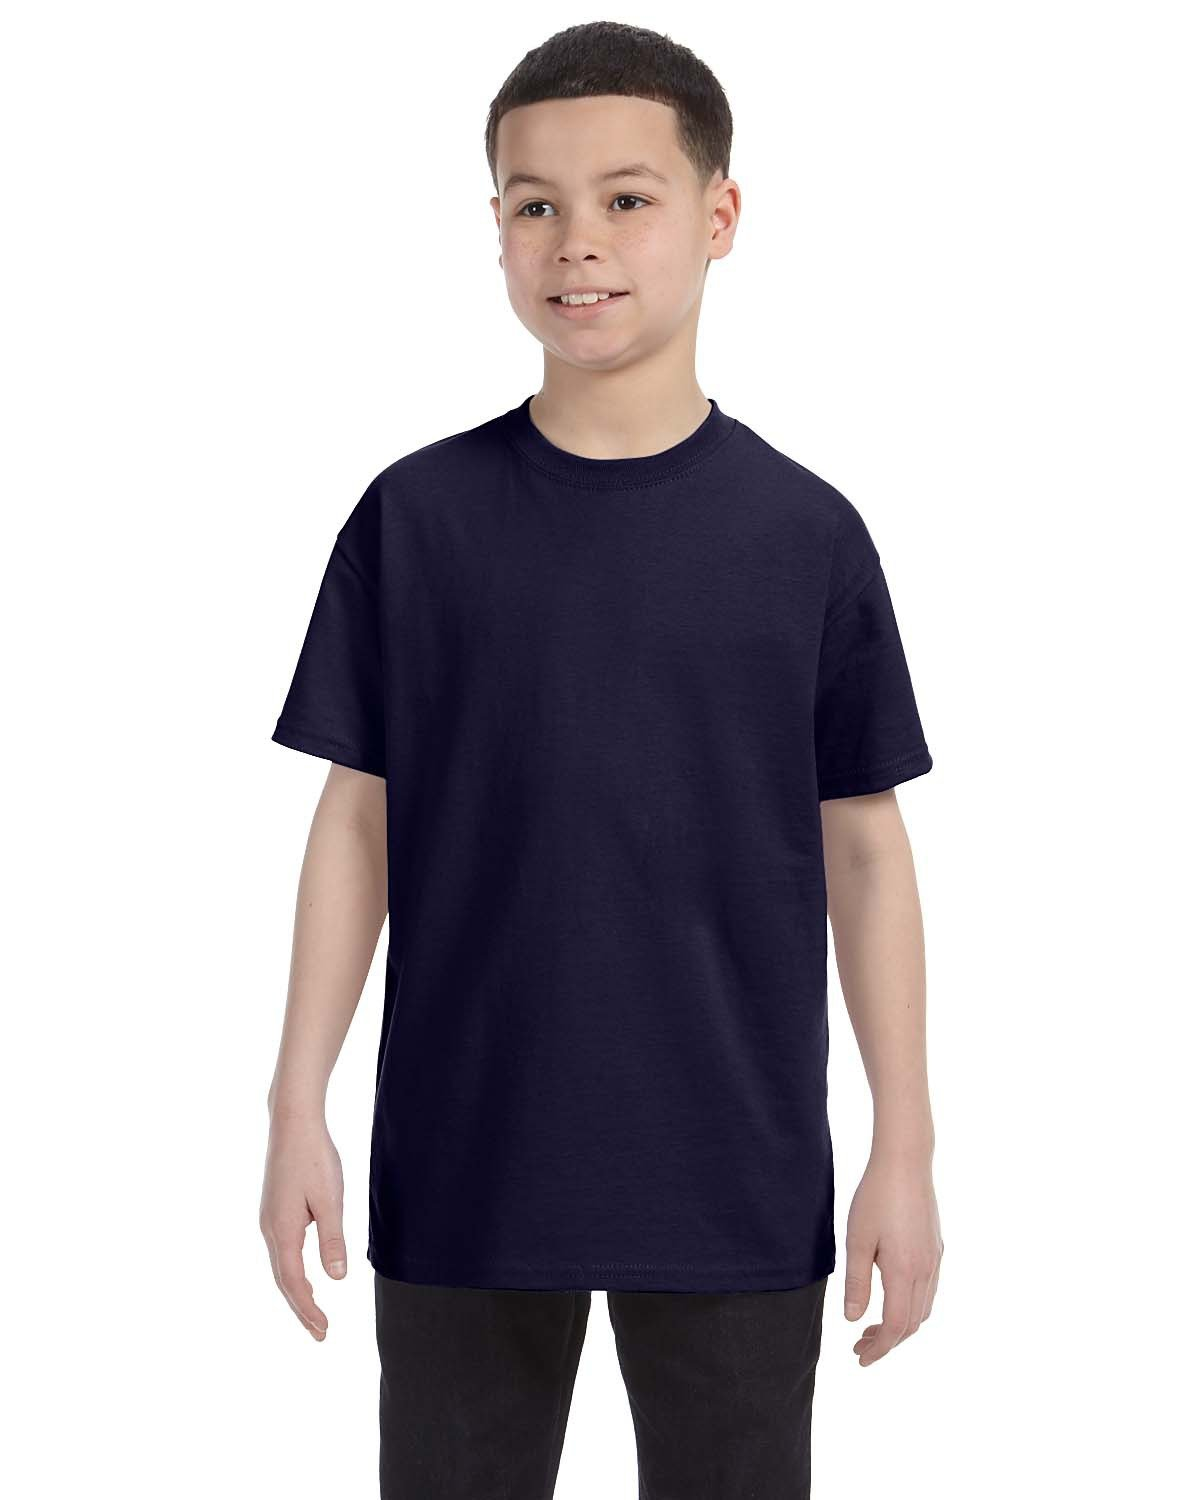 Hanes Youth Authentic-T T-Shirt NAVY